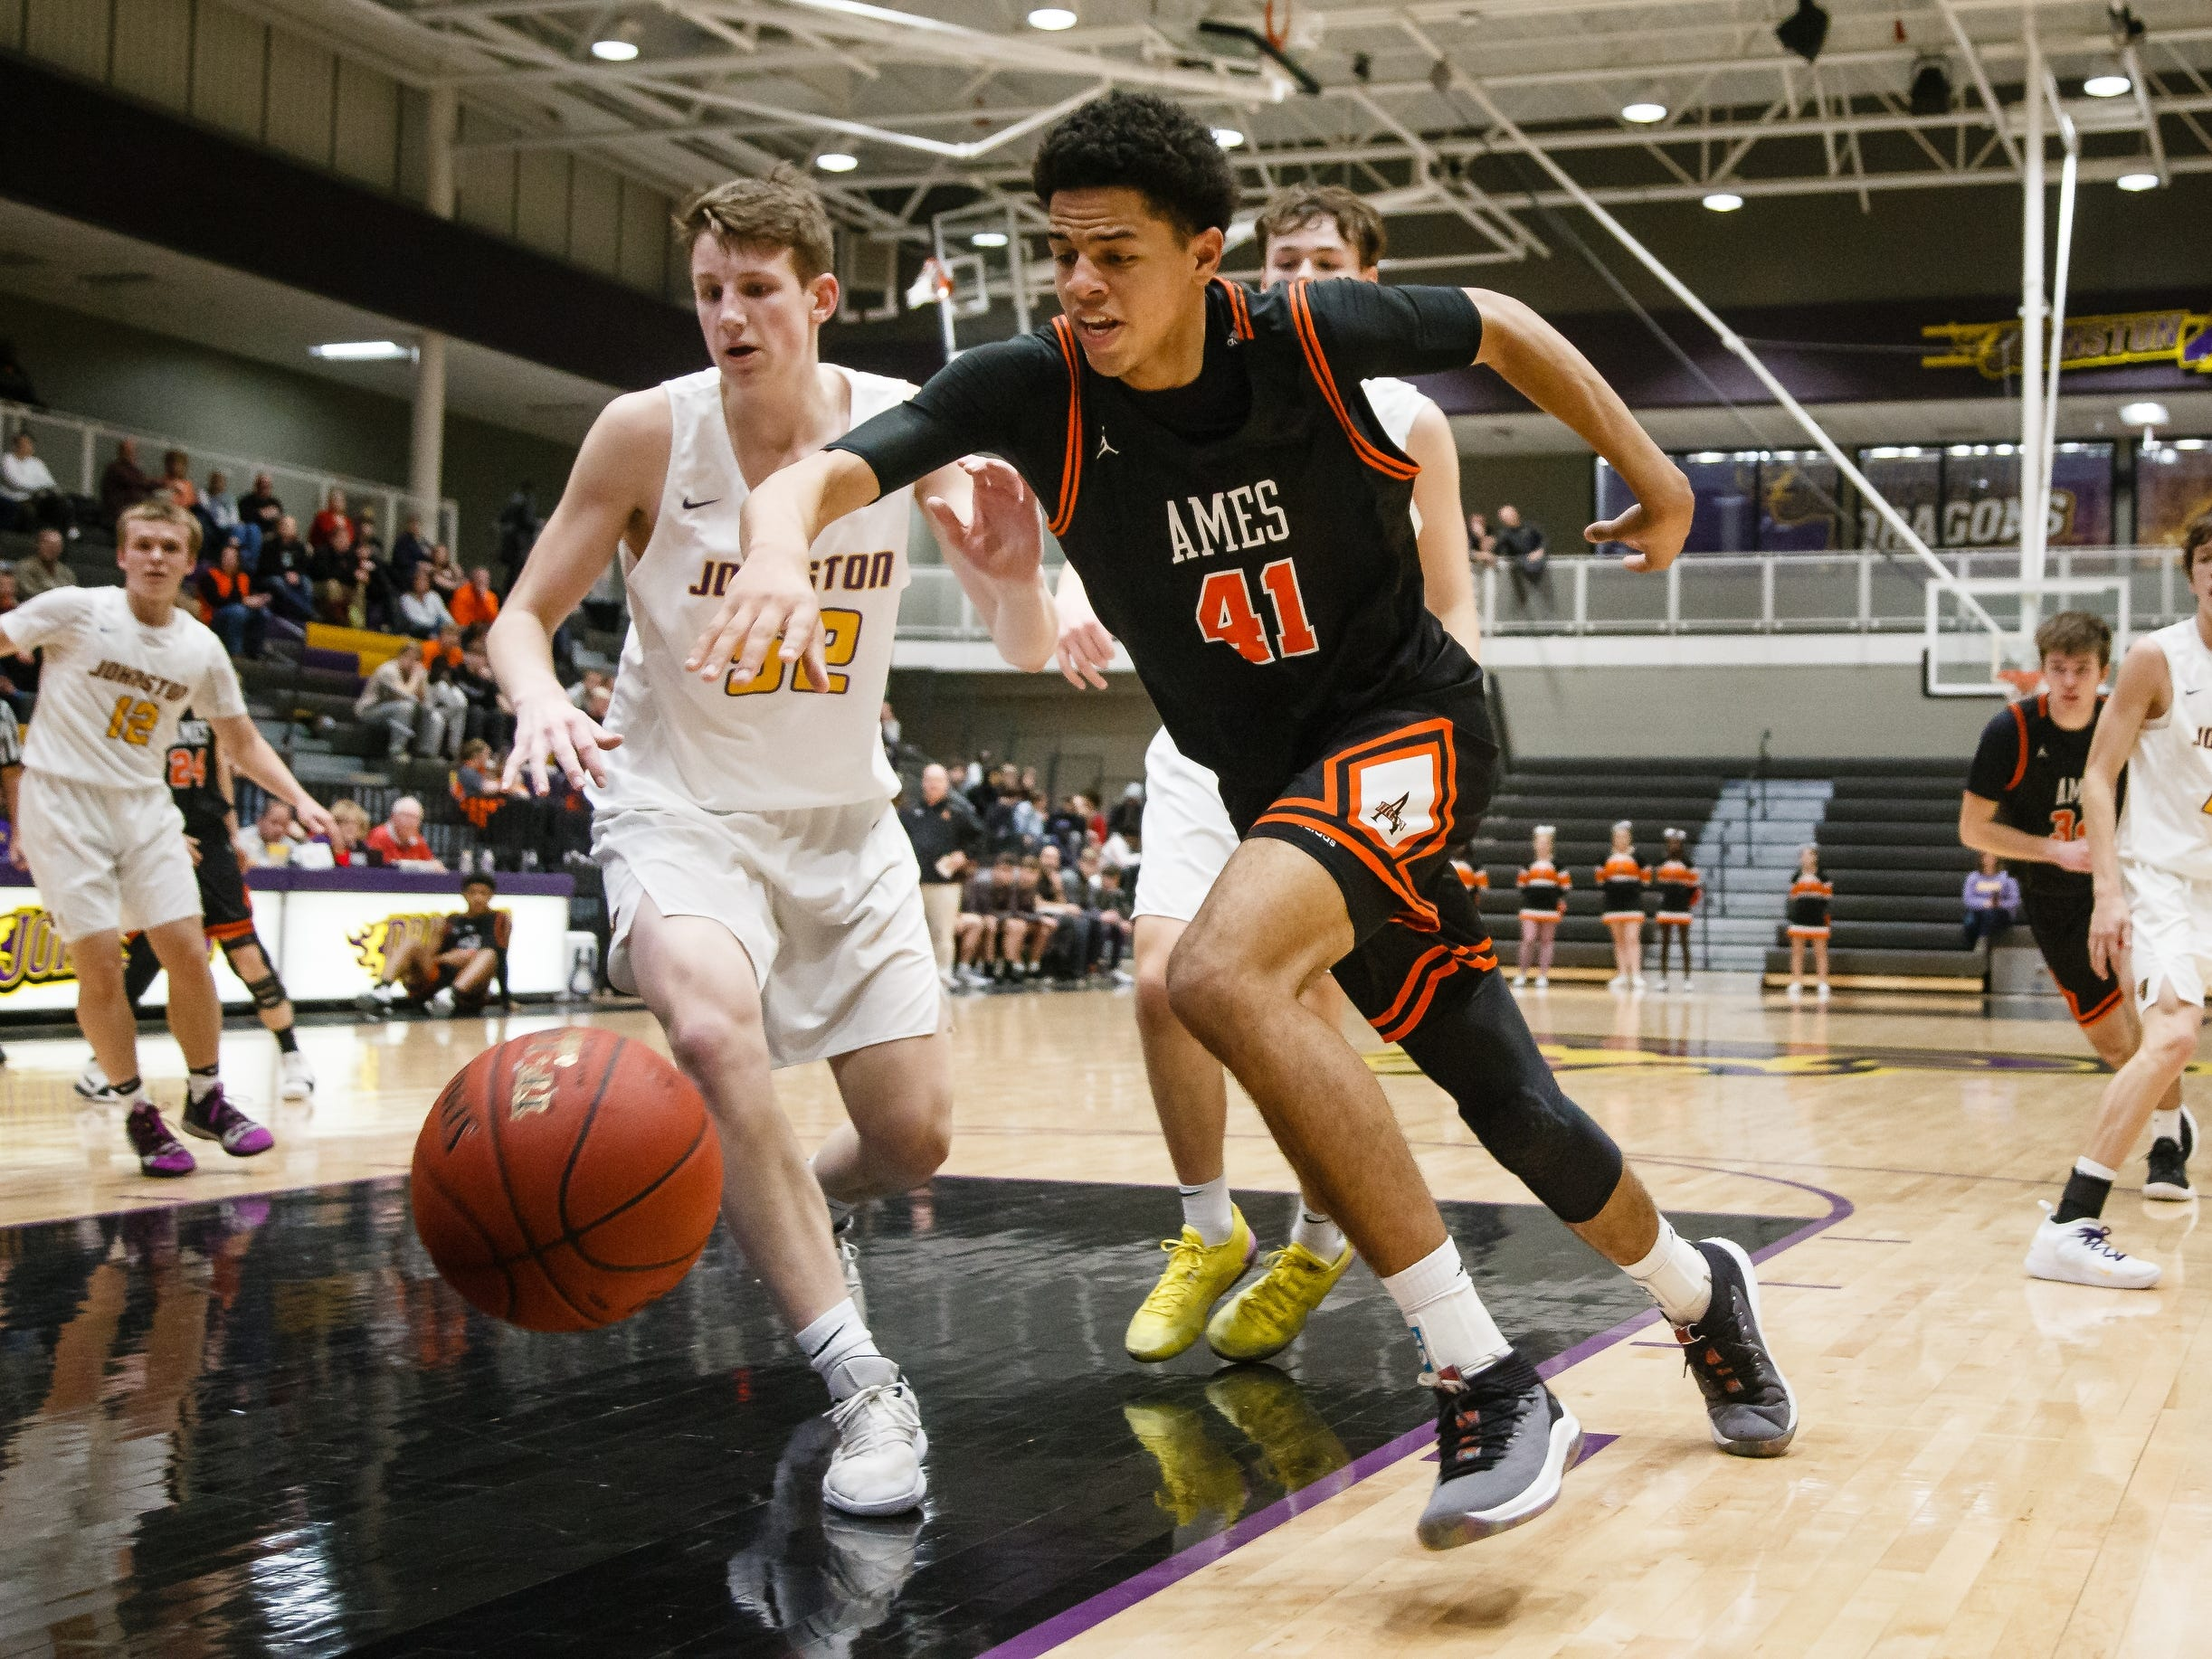 Ames senior Japannah Kellogg chases down a loose ball during Ames' basketball game against Johnston on Friday, Jan. 11, 2019, in Johnston.